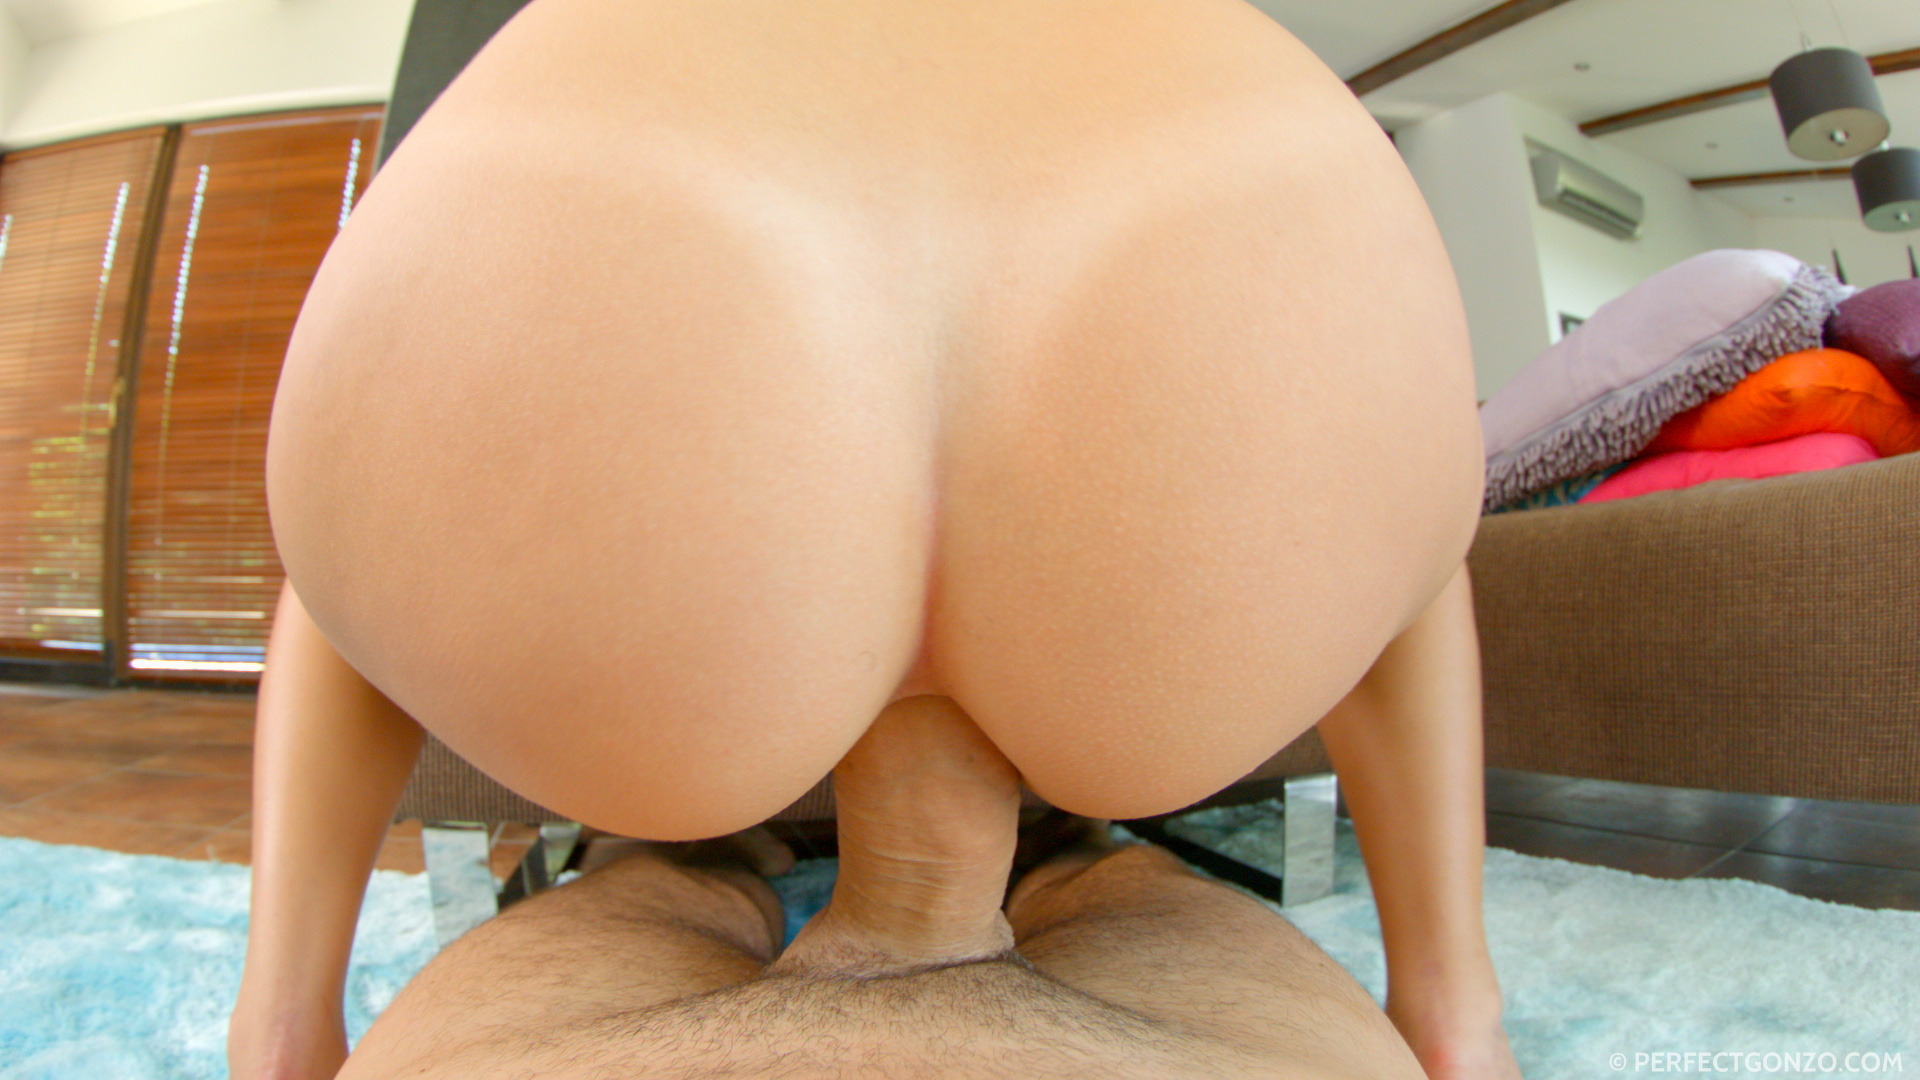 All internal three company039s coming039s in her pussy with 3 5